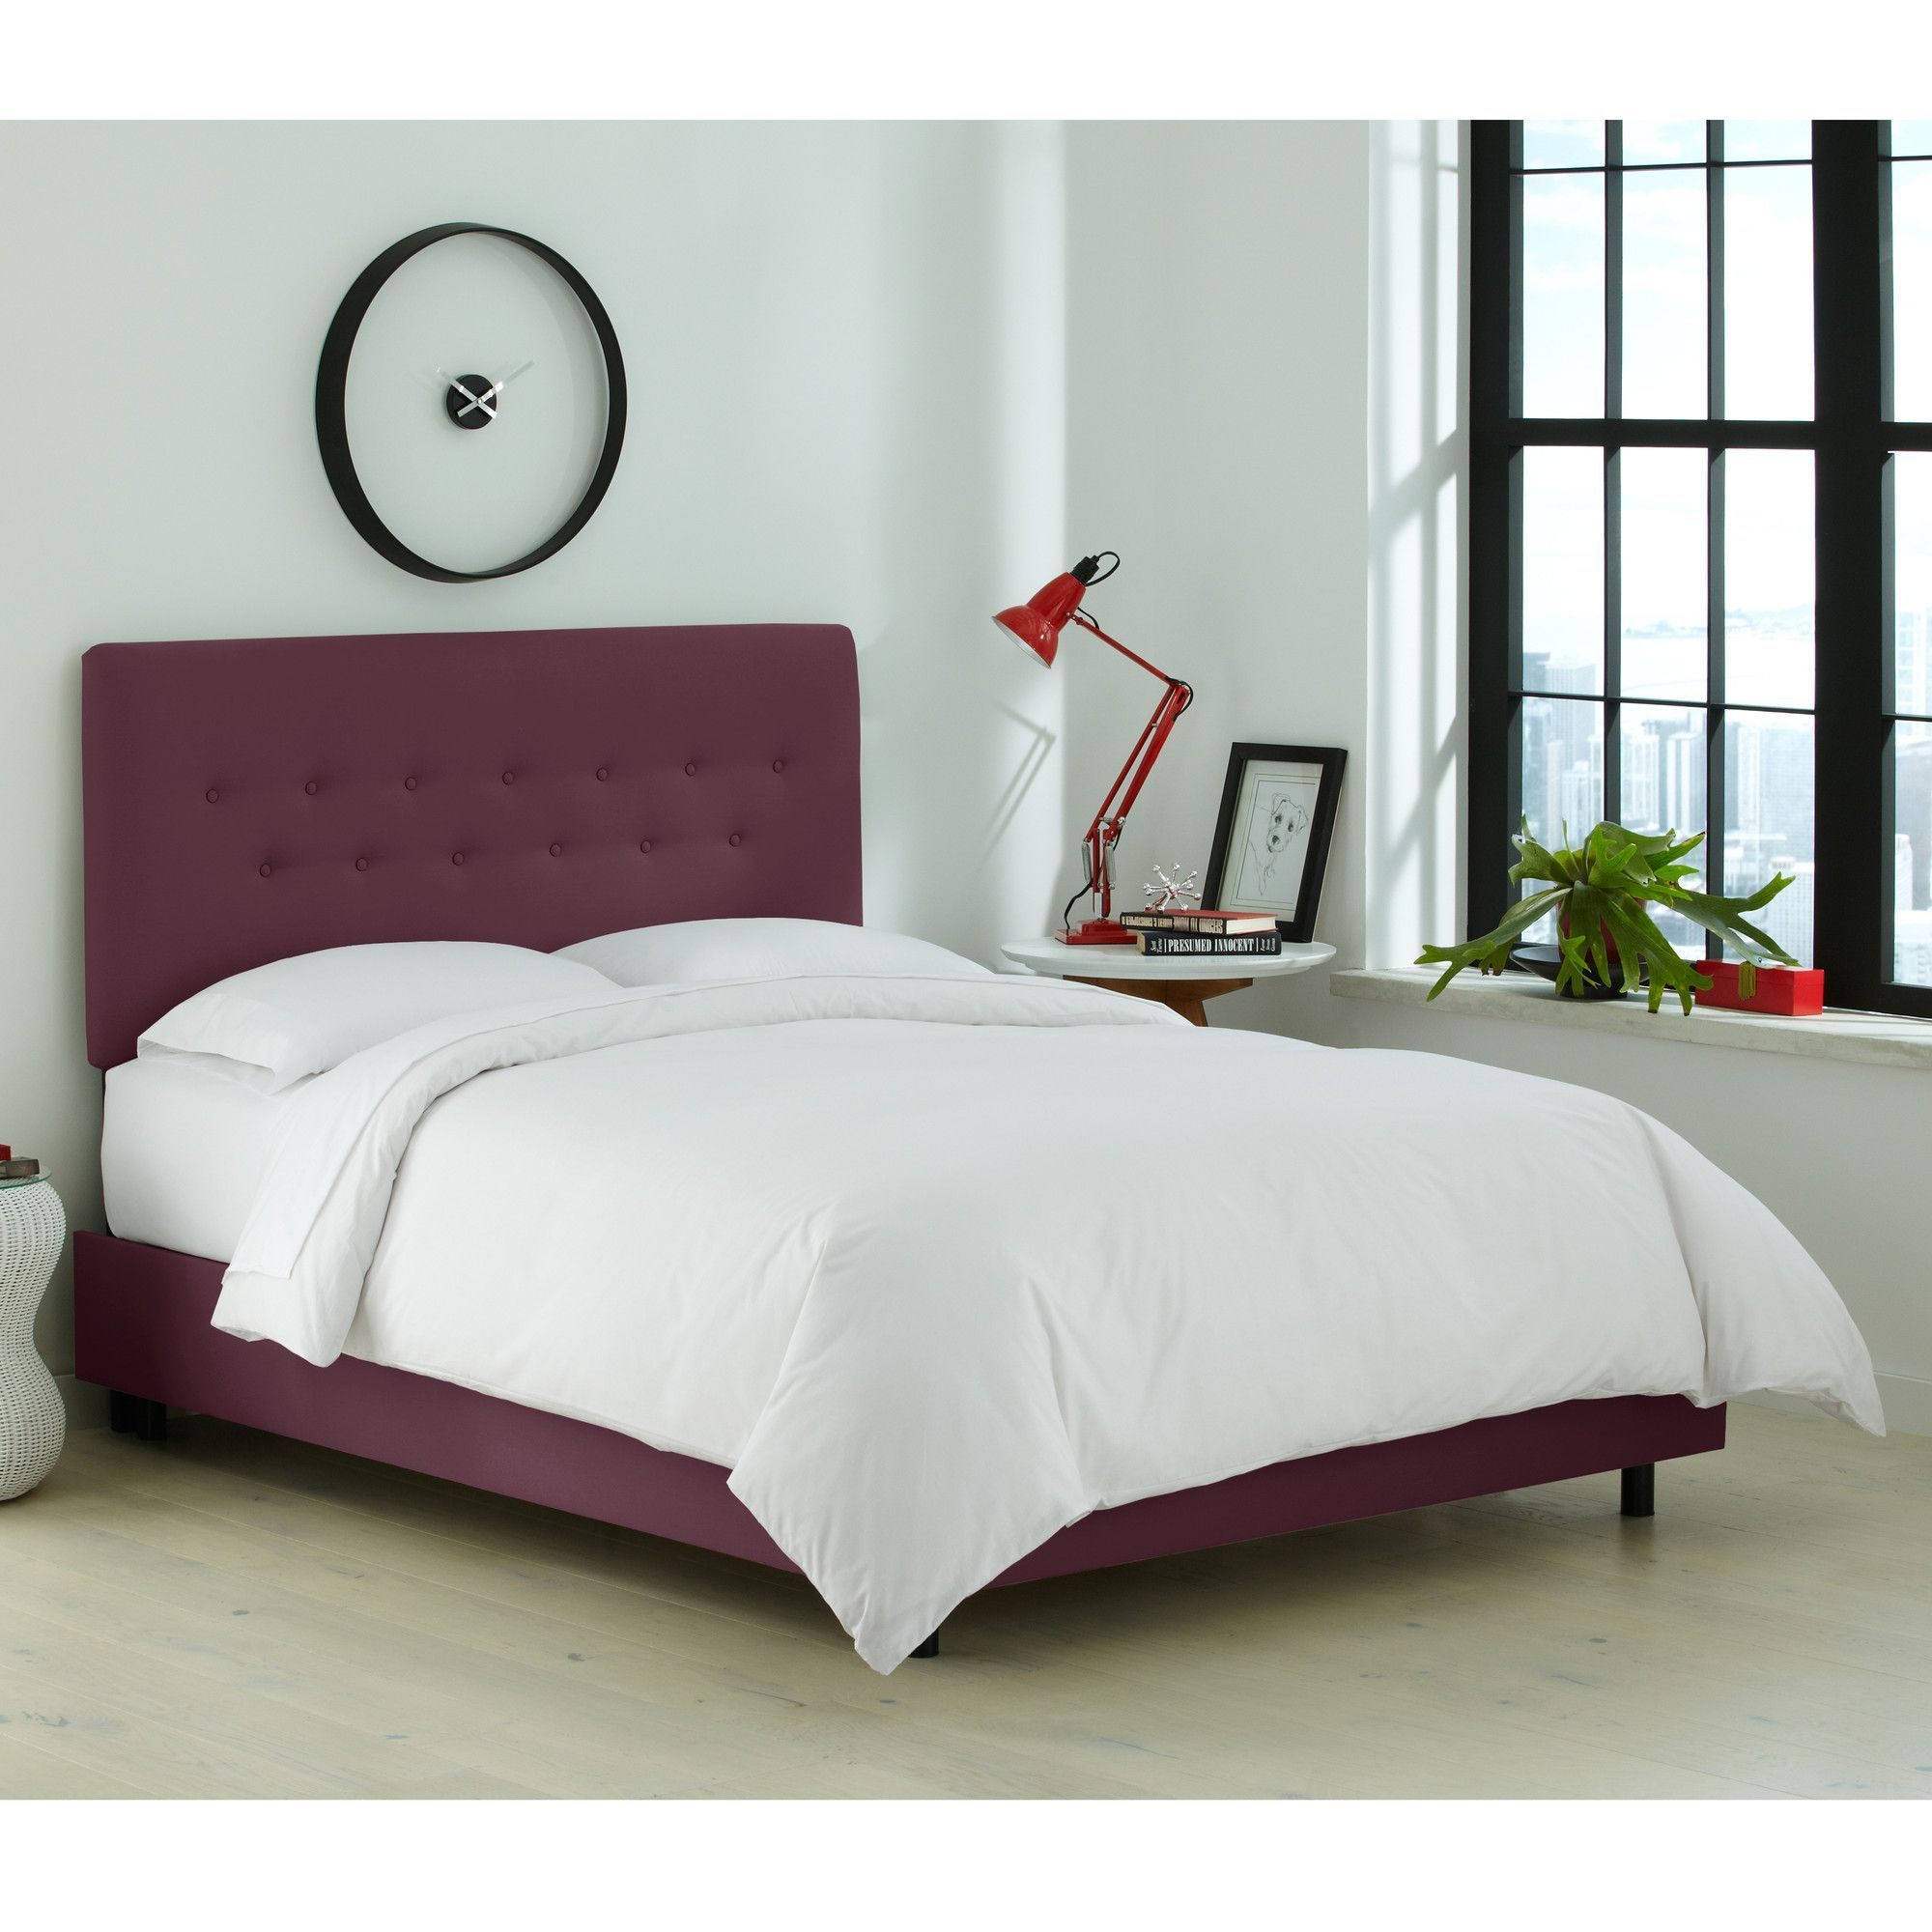 Keele Upholstered Standard Bed Bed sizes, Bed, Panel bed